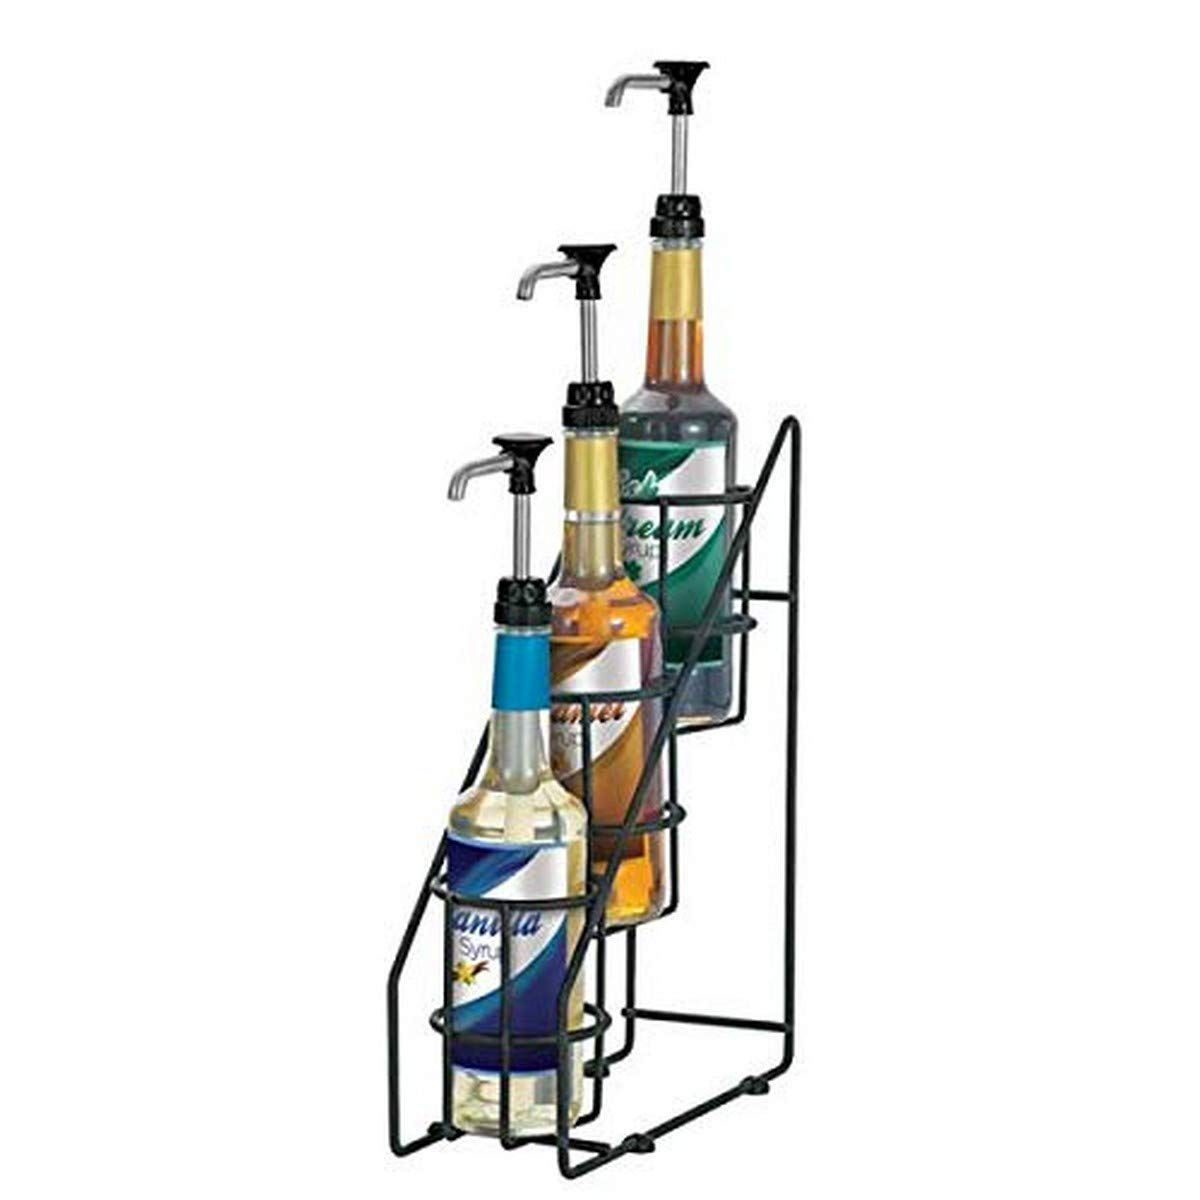 Server Products 88652 WireWise Organizer 3 Combo 3-Tiered Max 85% OFF 1 Sales